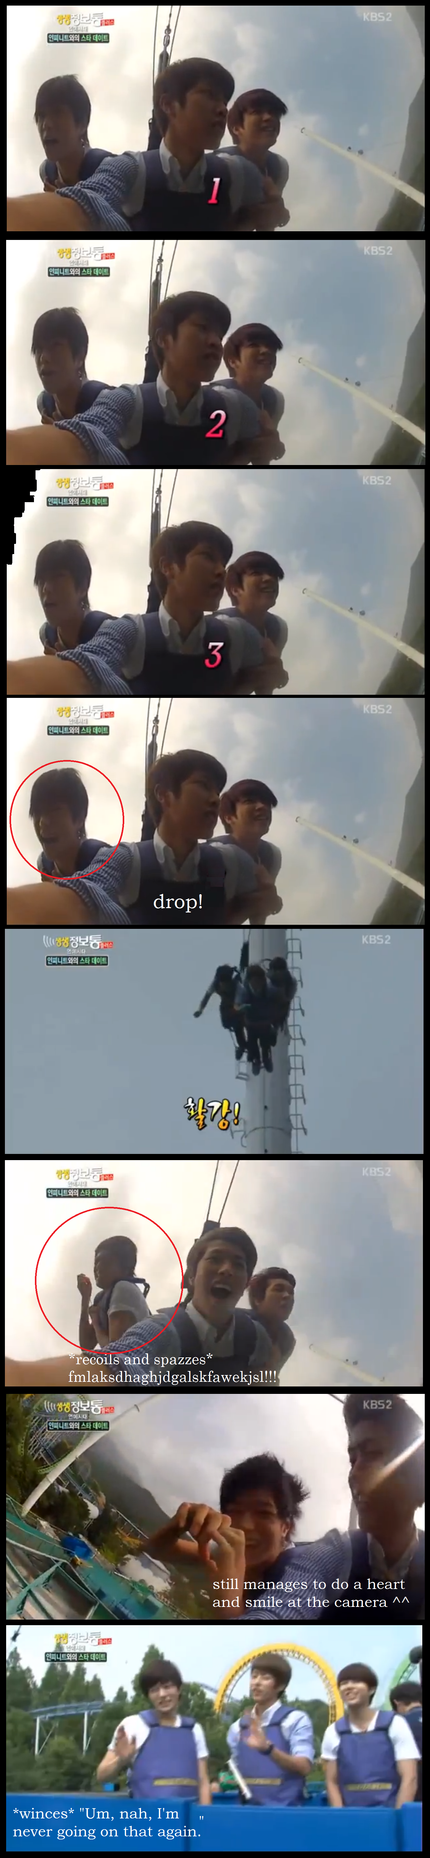 L/Myungsoo On A Bungee Jump Ride